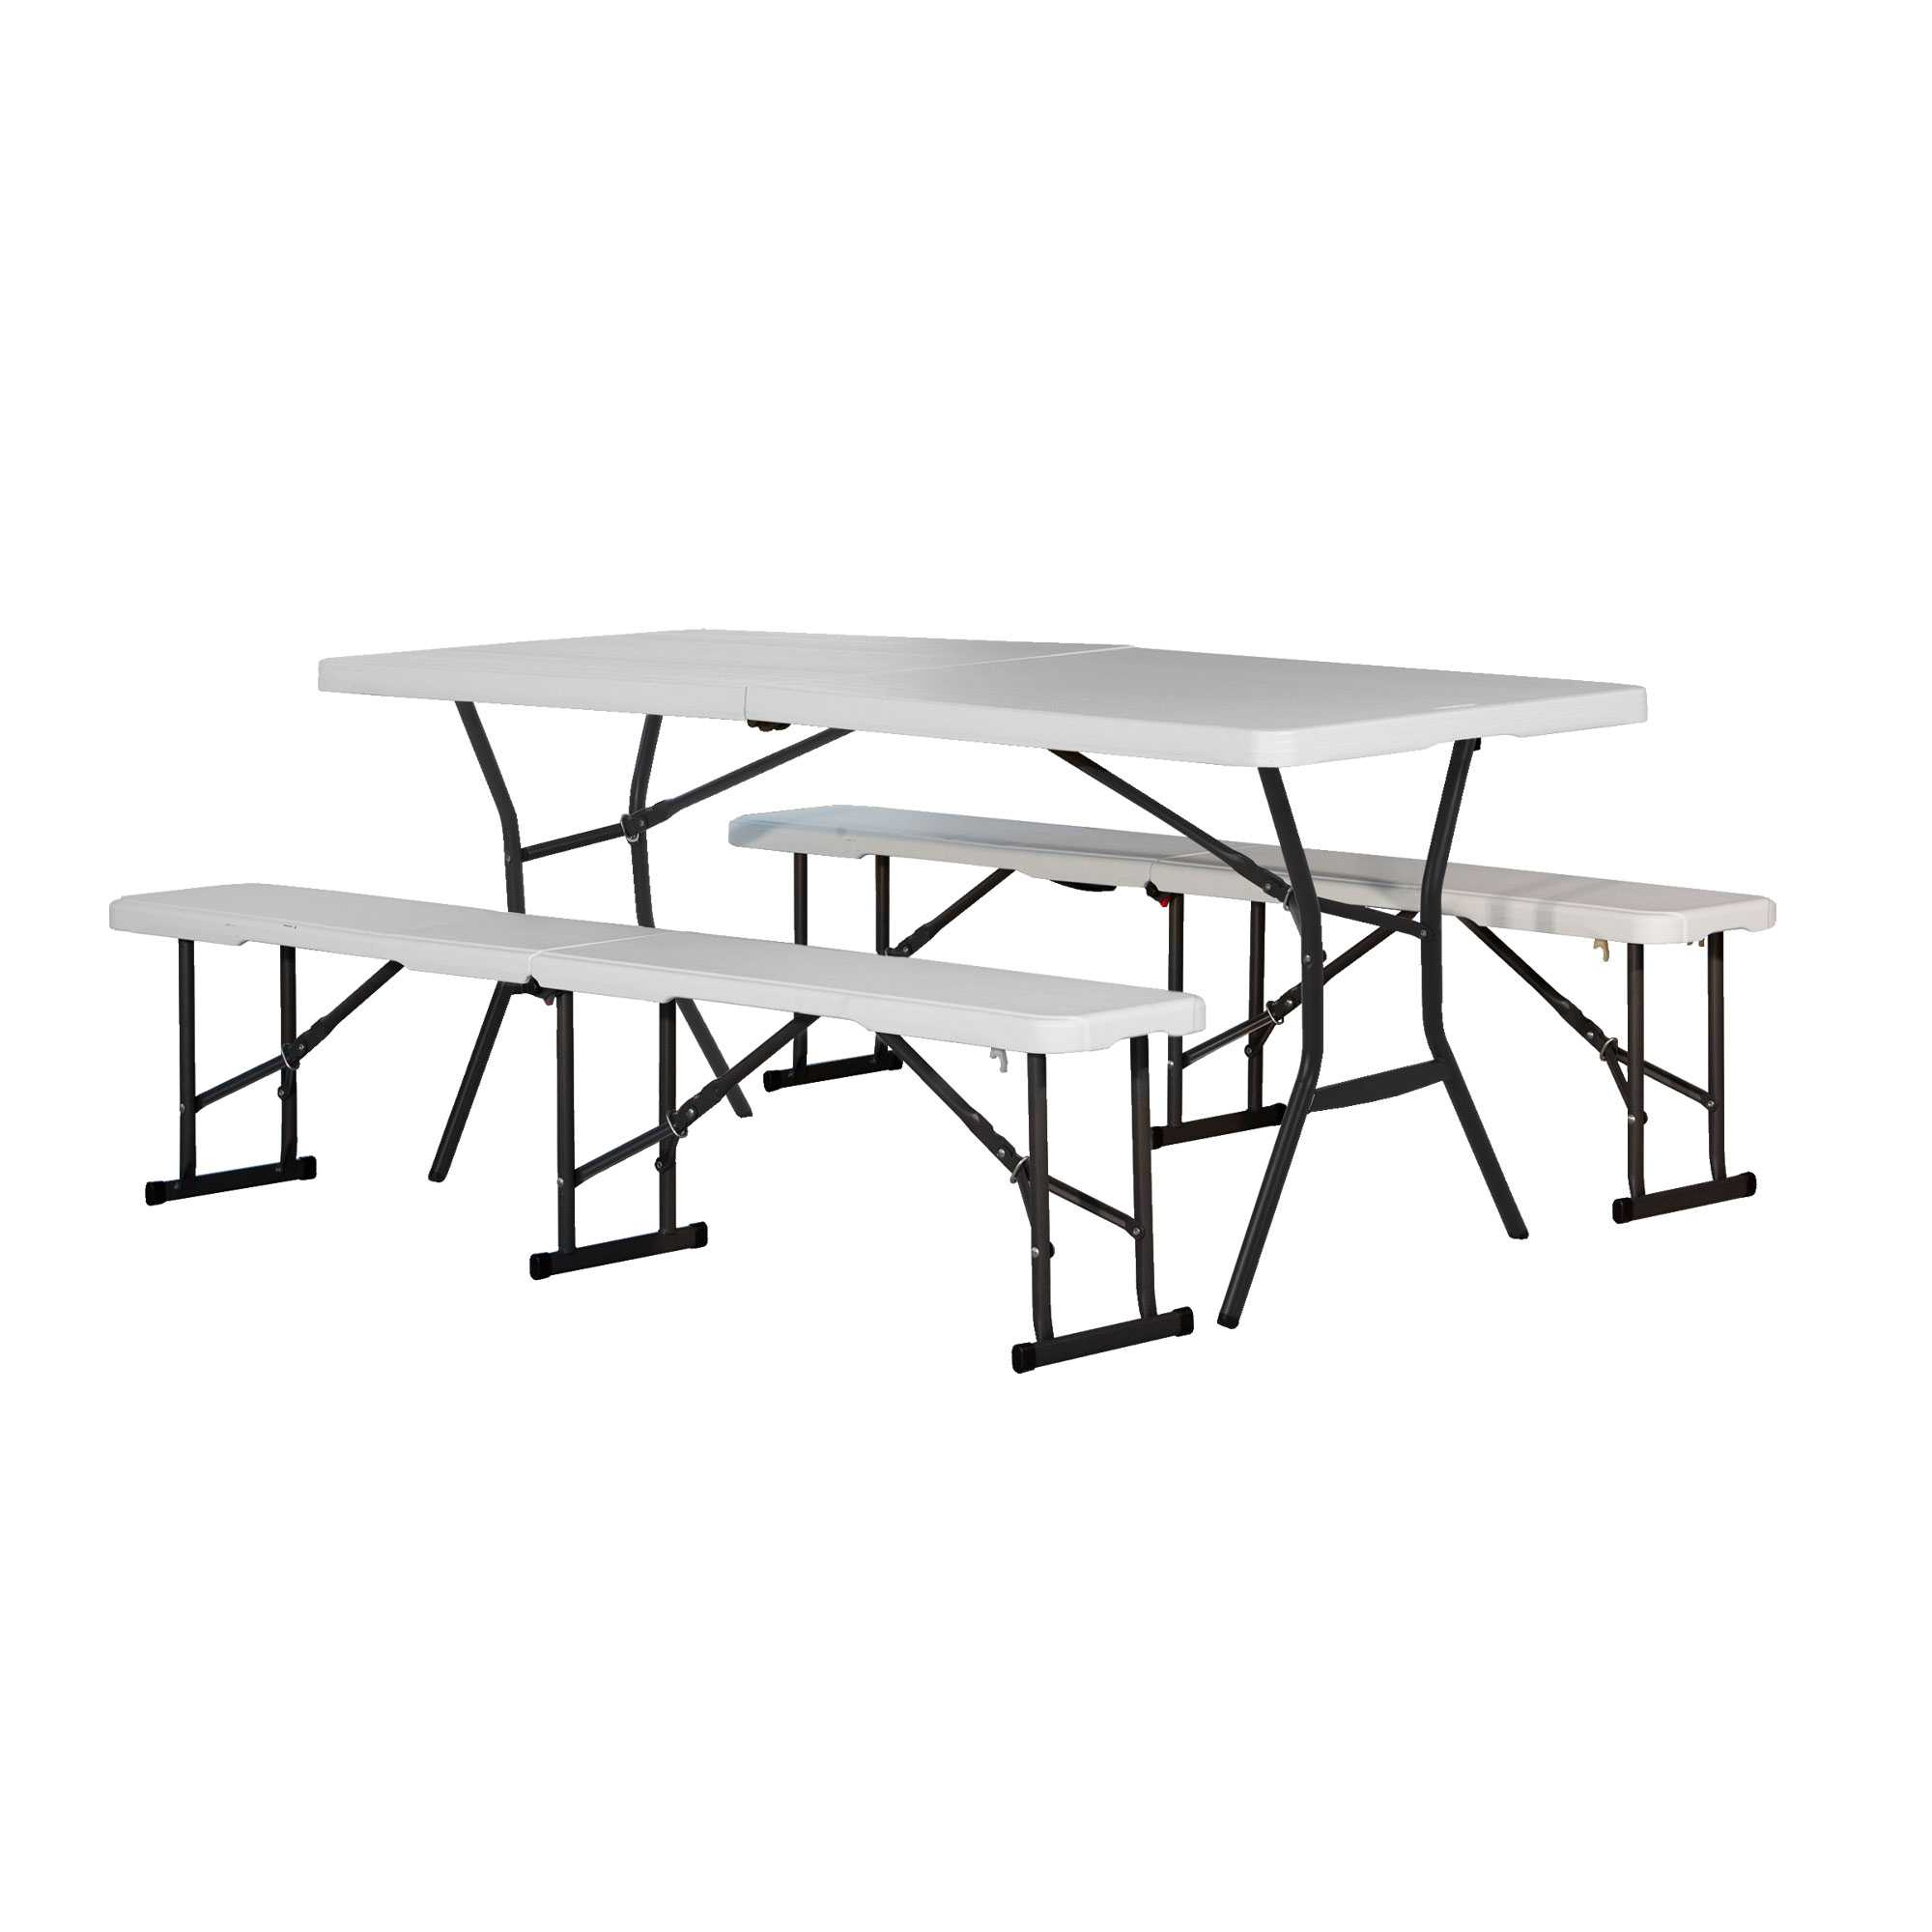 Lifetime Table and (2) Bench Combo Pack (Light Commercial)